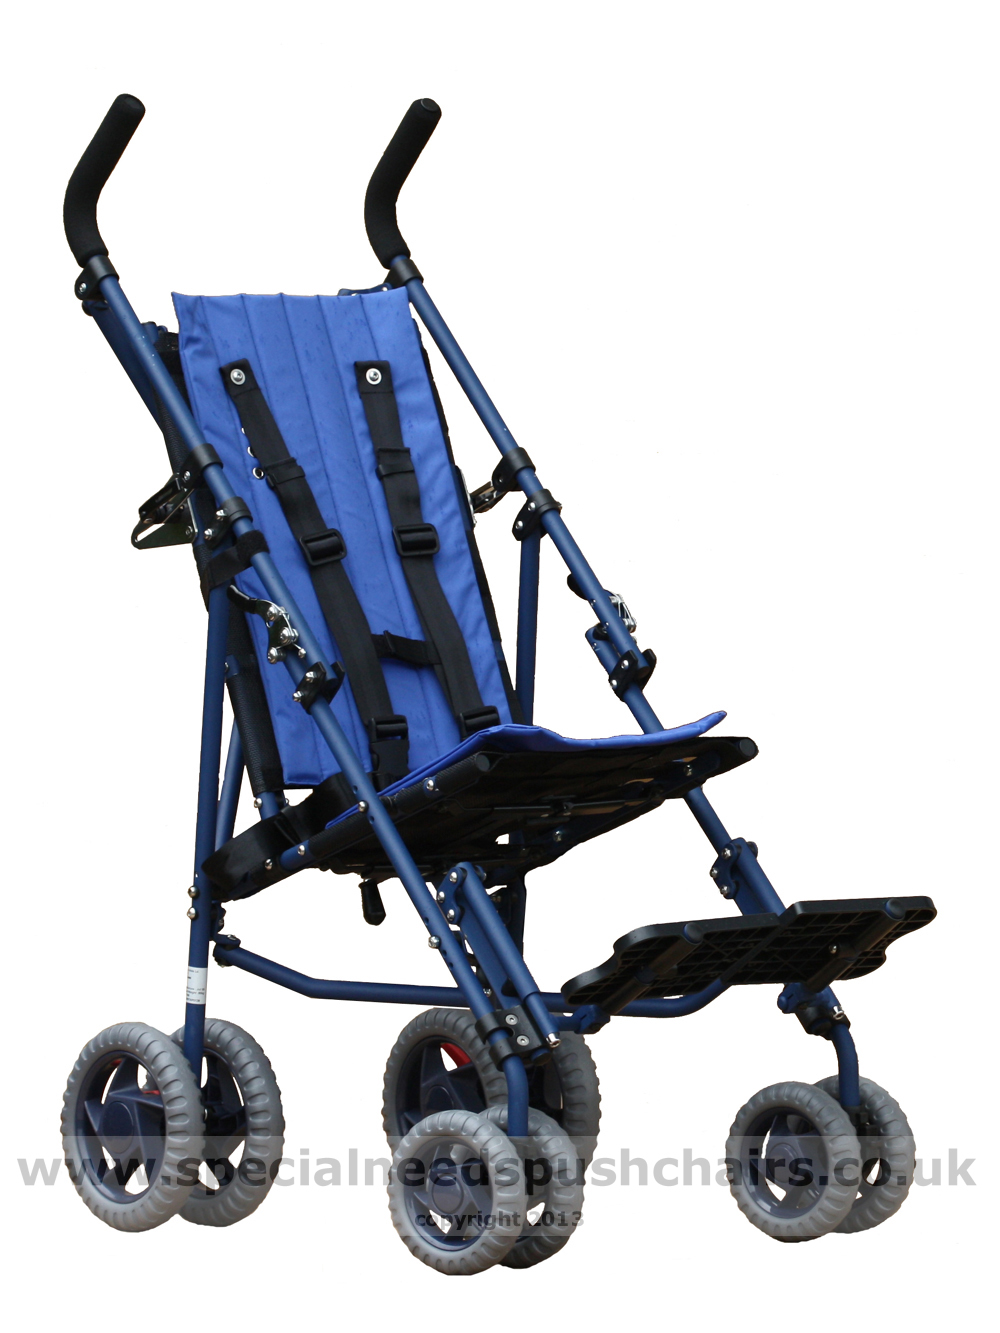 How To Order Your Special Needs Buggy